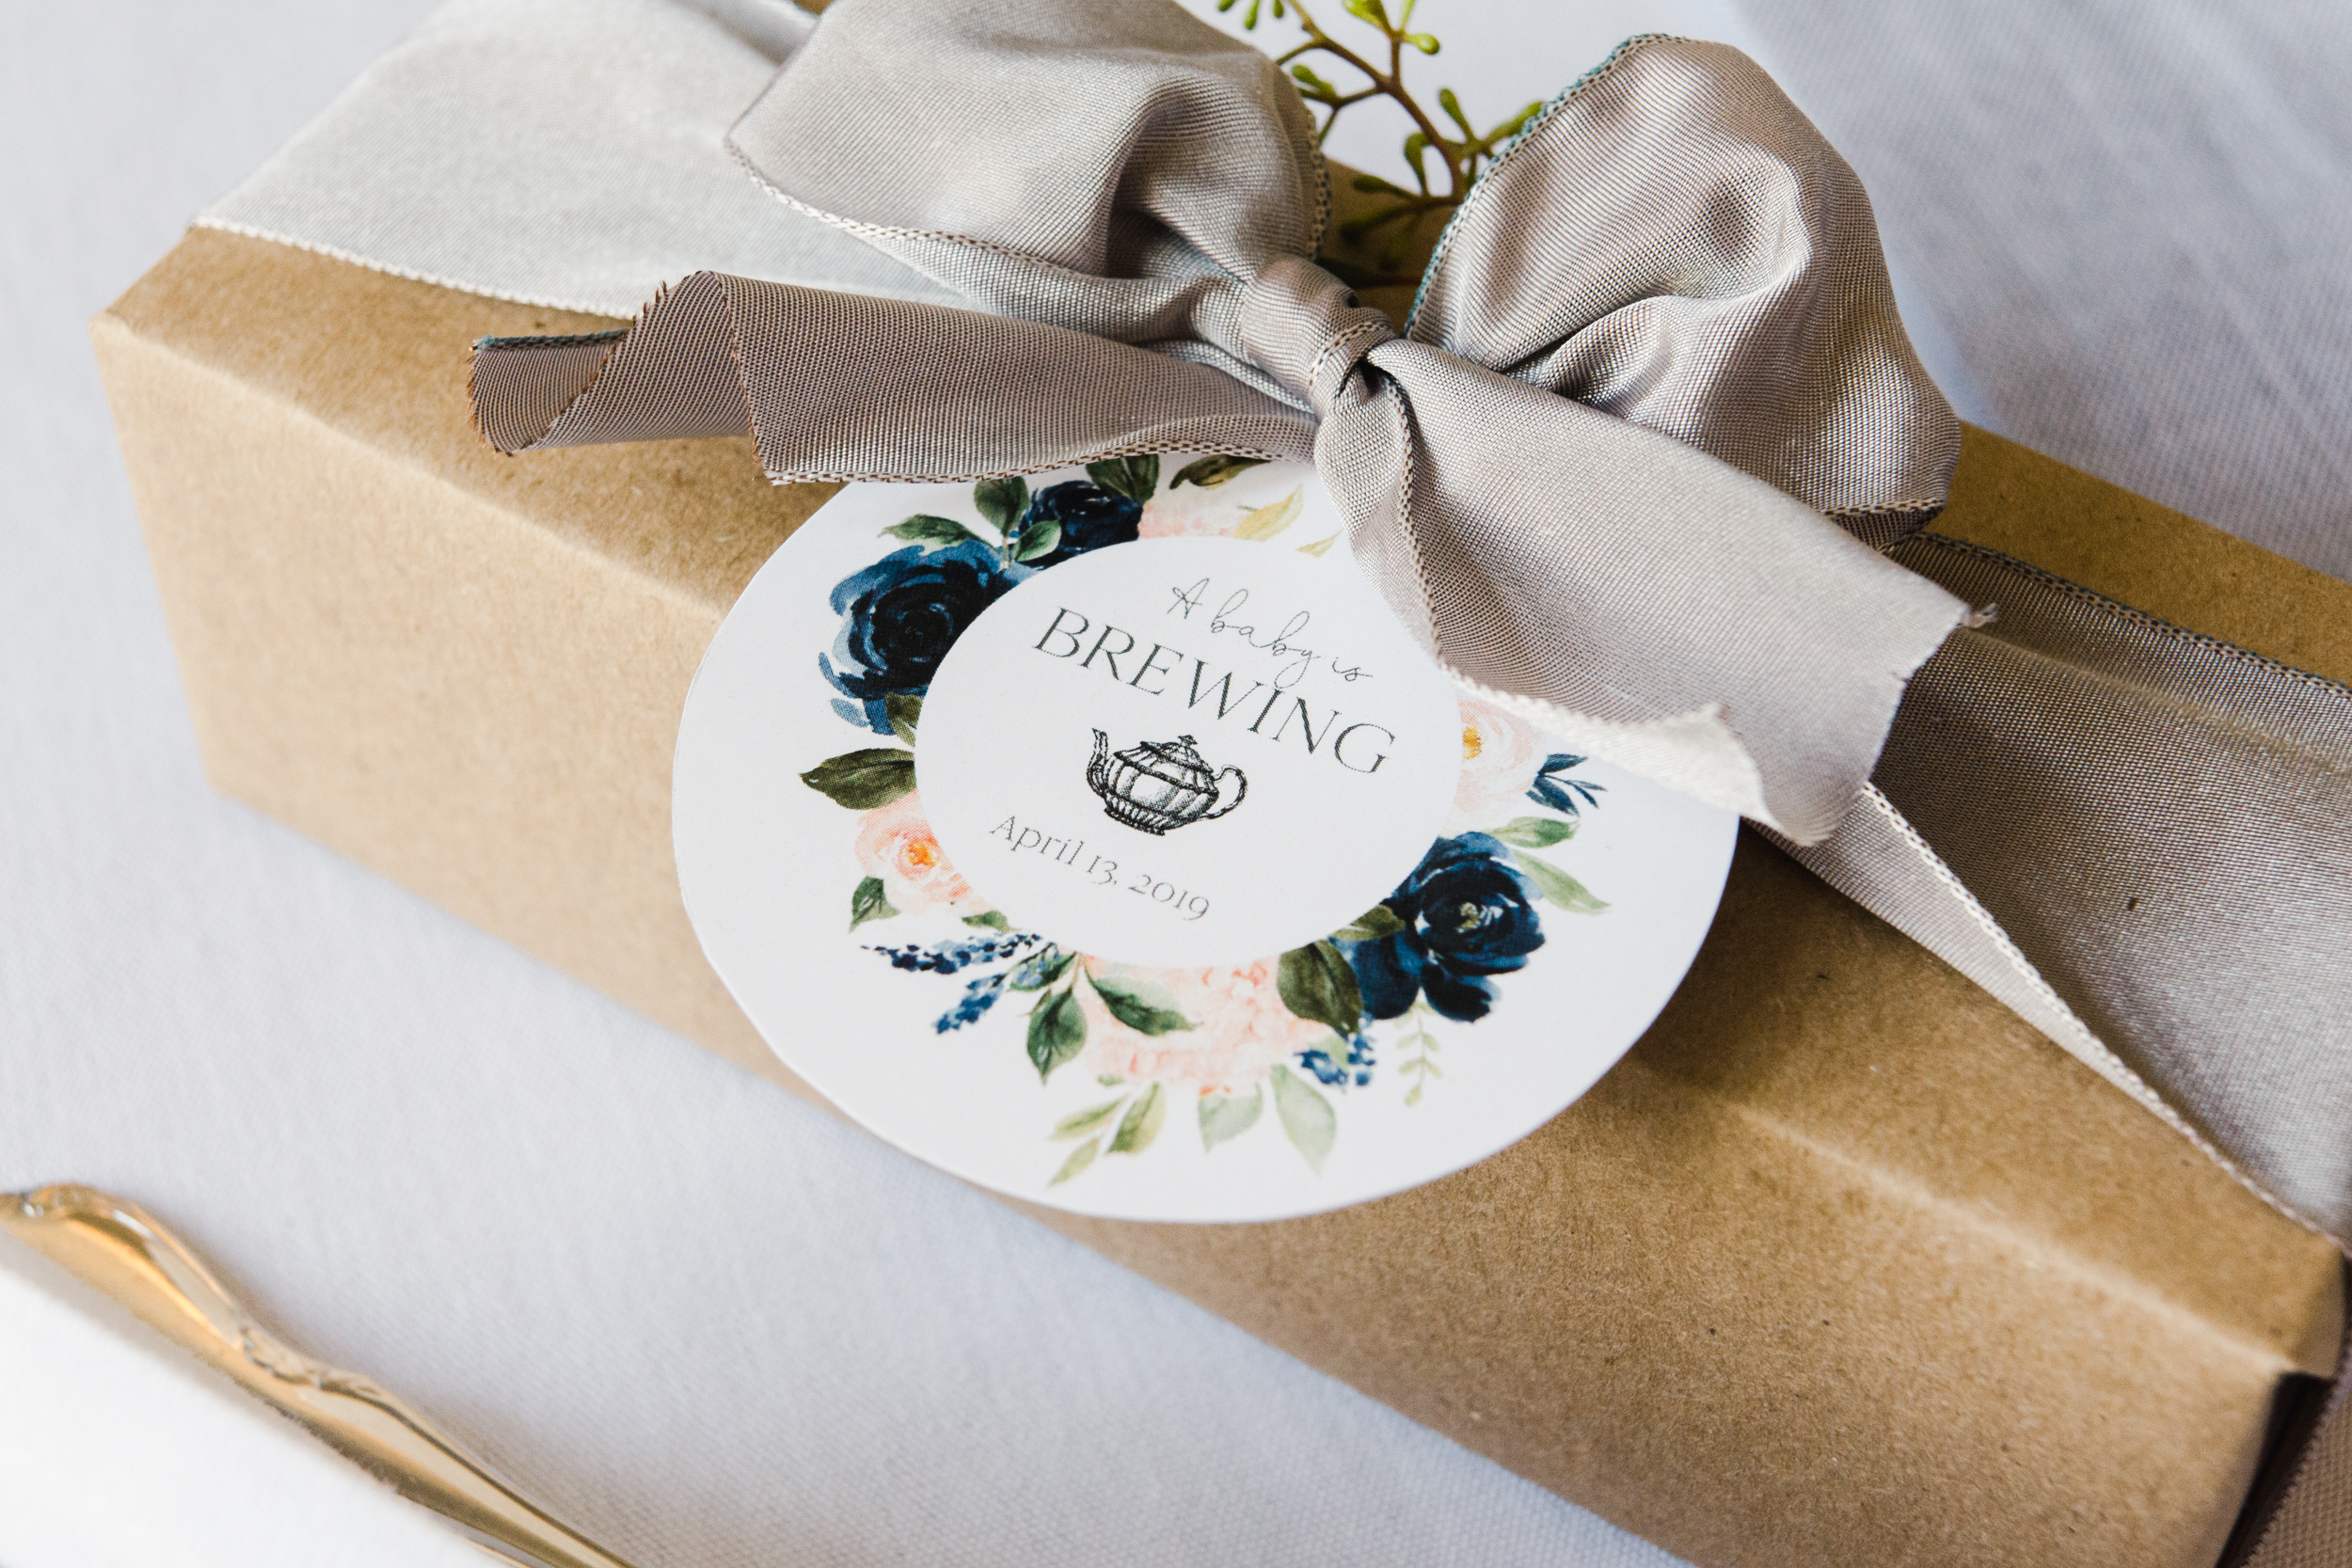 A favor box containing silk tea sachets and an assortment of almond and coffee macaroons was beautifully wrapped then hand tied with silver ribbon and included a sweet 'a baby is brewing' card in the same watercolor design as the rest of the stationary.